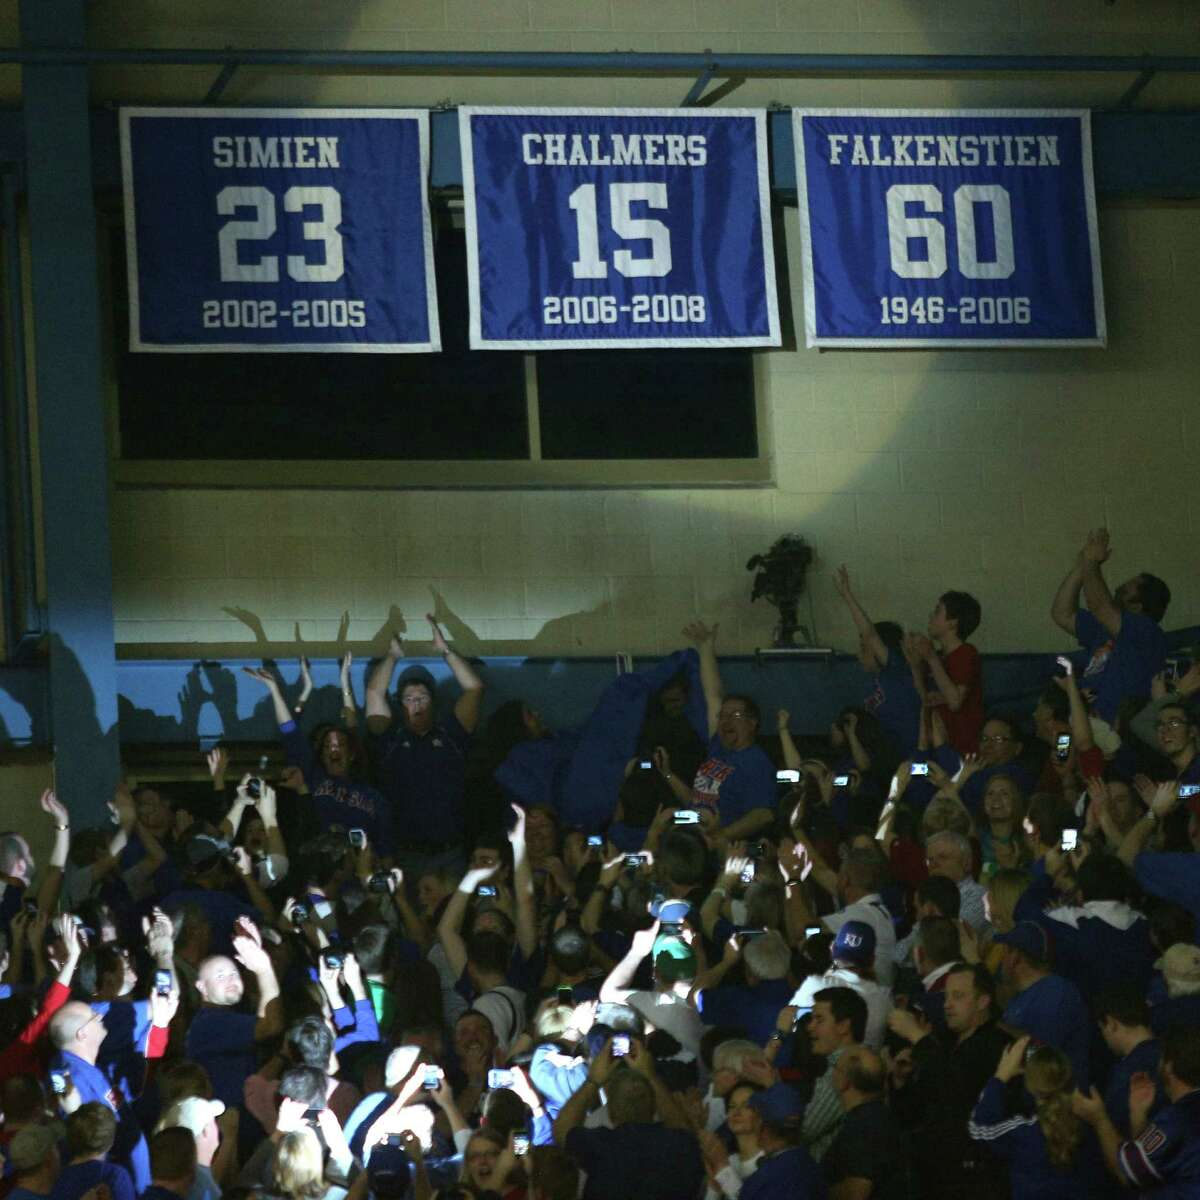 A banner with the No. 15 of former Kansas player Mario Chalmers is revealed during a ceremony retiring his college jersey during an NCAA college basketball game between Texas and Kansas, Saturday, Feb. 16, 2013, in Lawrence, Kan. (AP Photo/Ed Zurga)